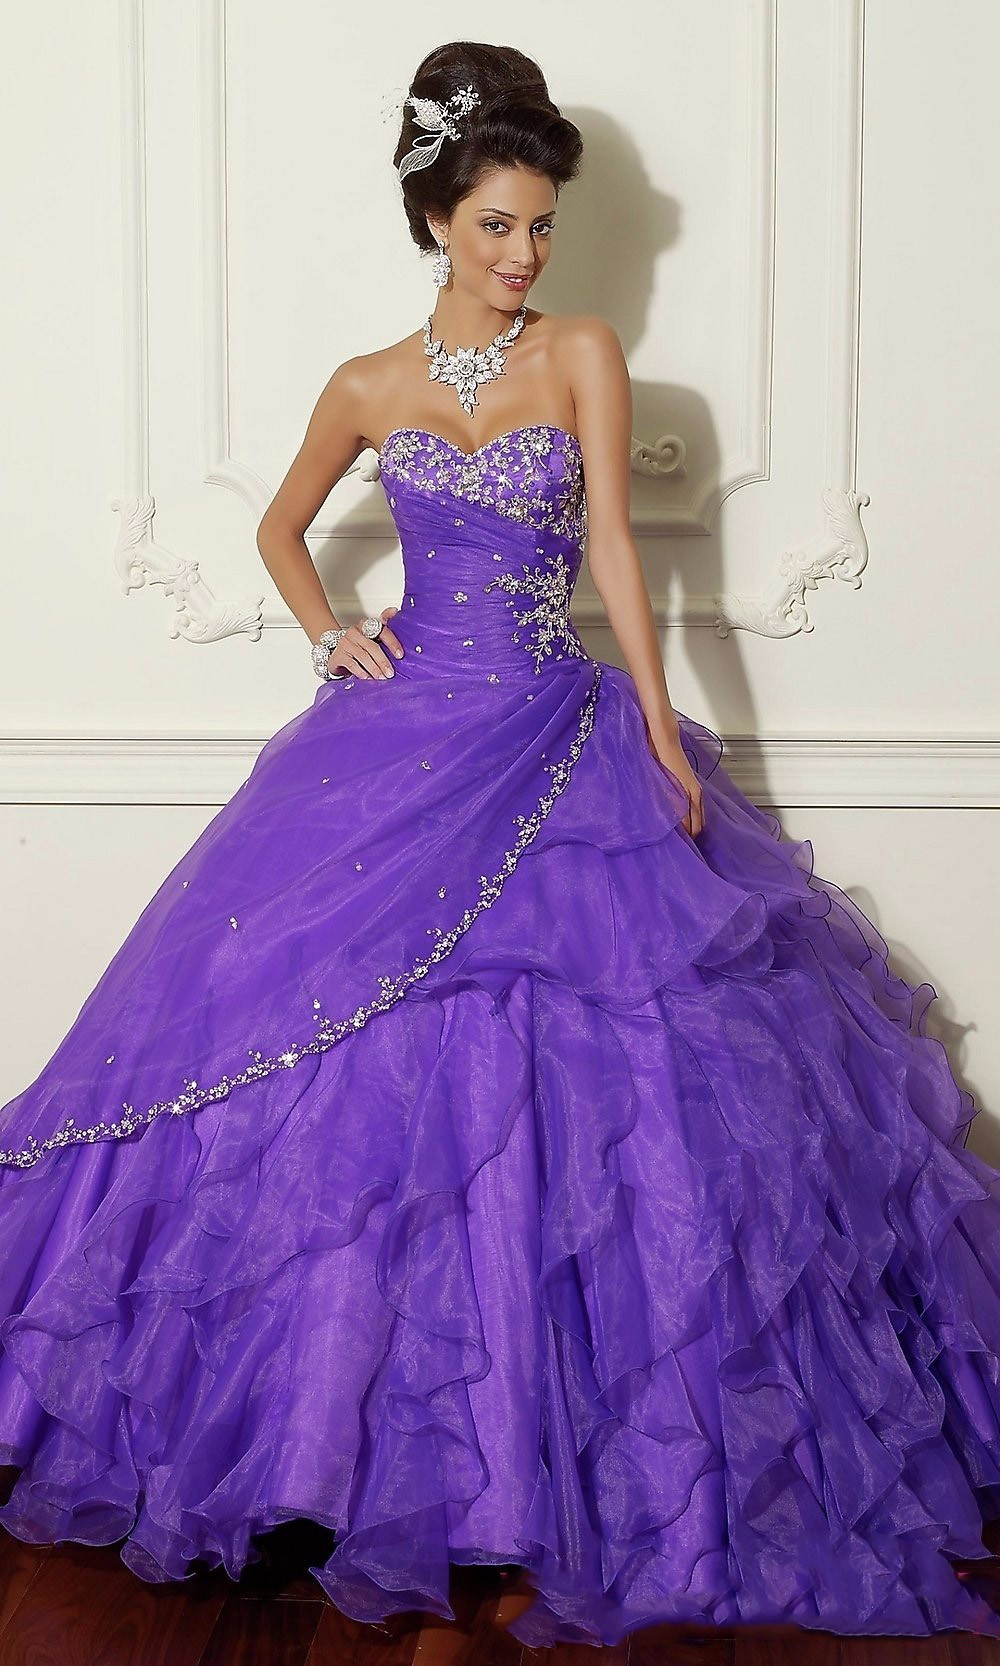 f14172ea2c5 Please contact with us if you want to custom made this dress about size